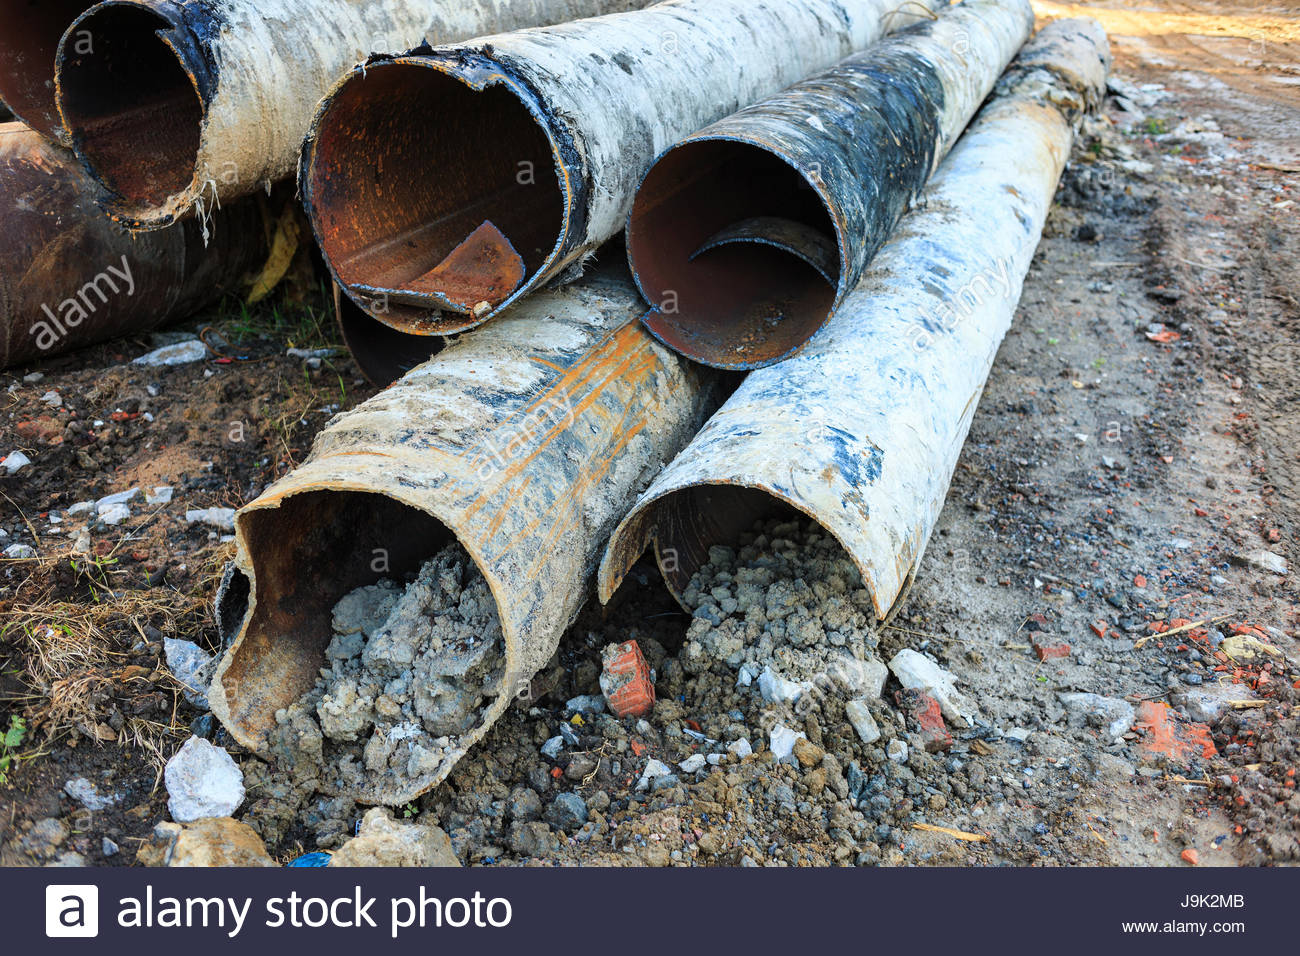 Dismantle the old water pipes lying next to the trench for What are old plumbing pipes made of